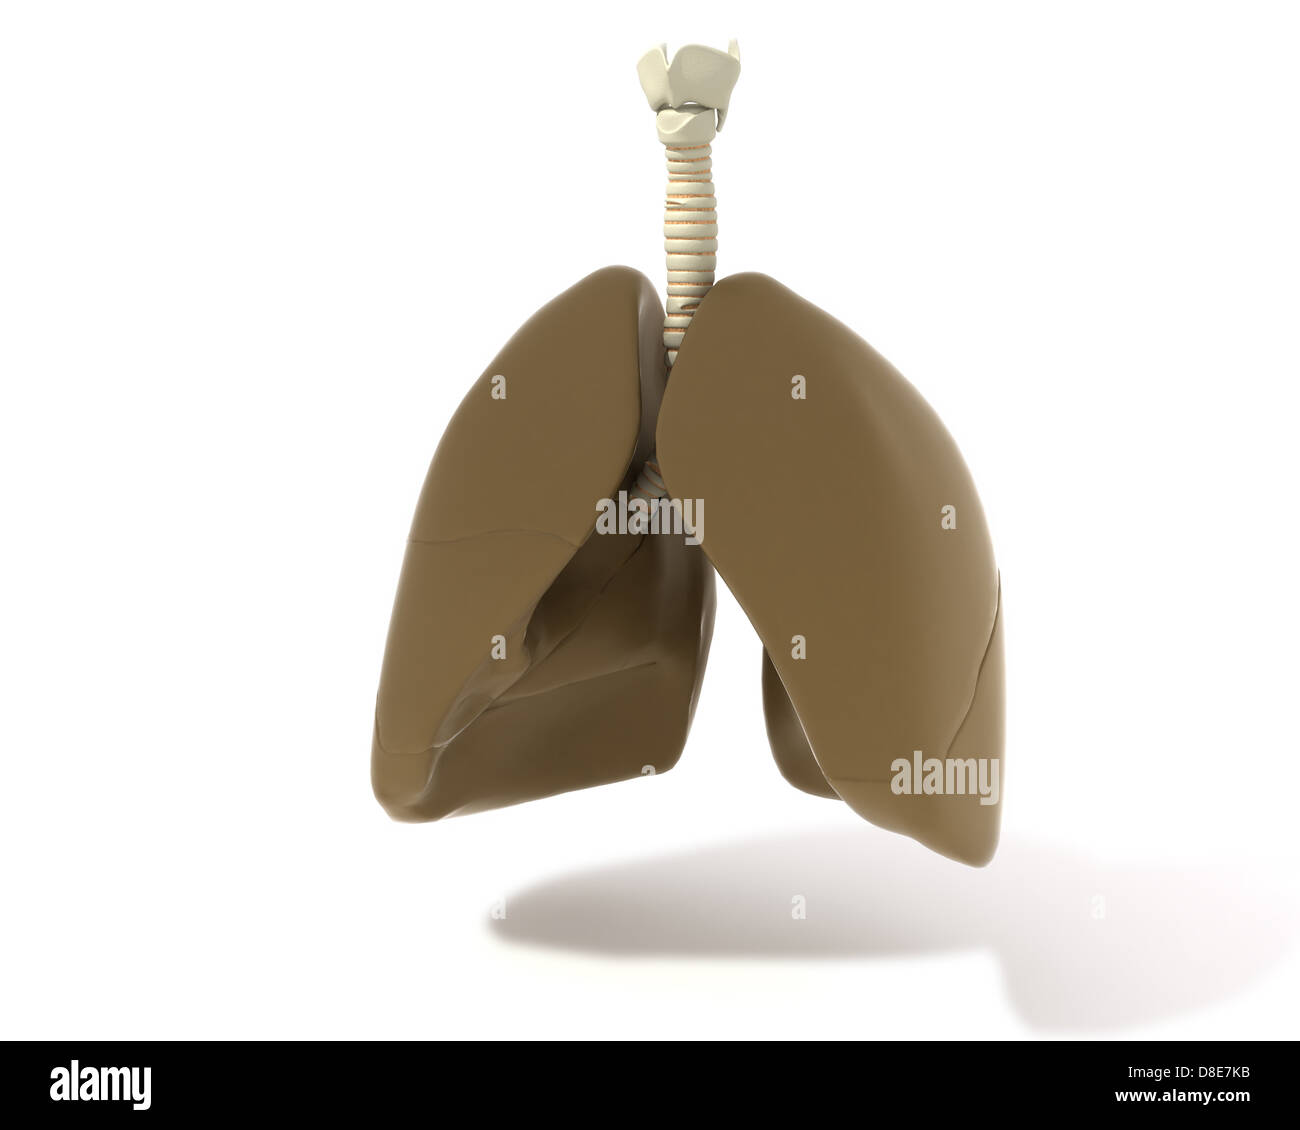 Illustration of a lung with larynx and trachea - Stock Image